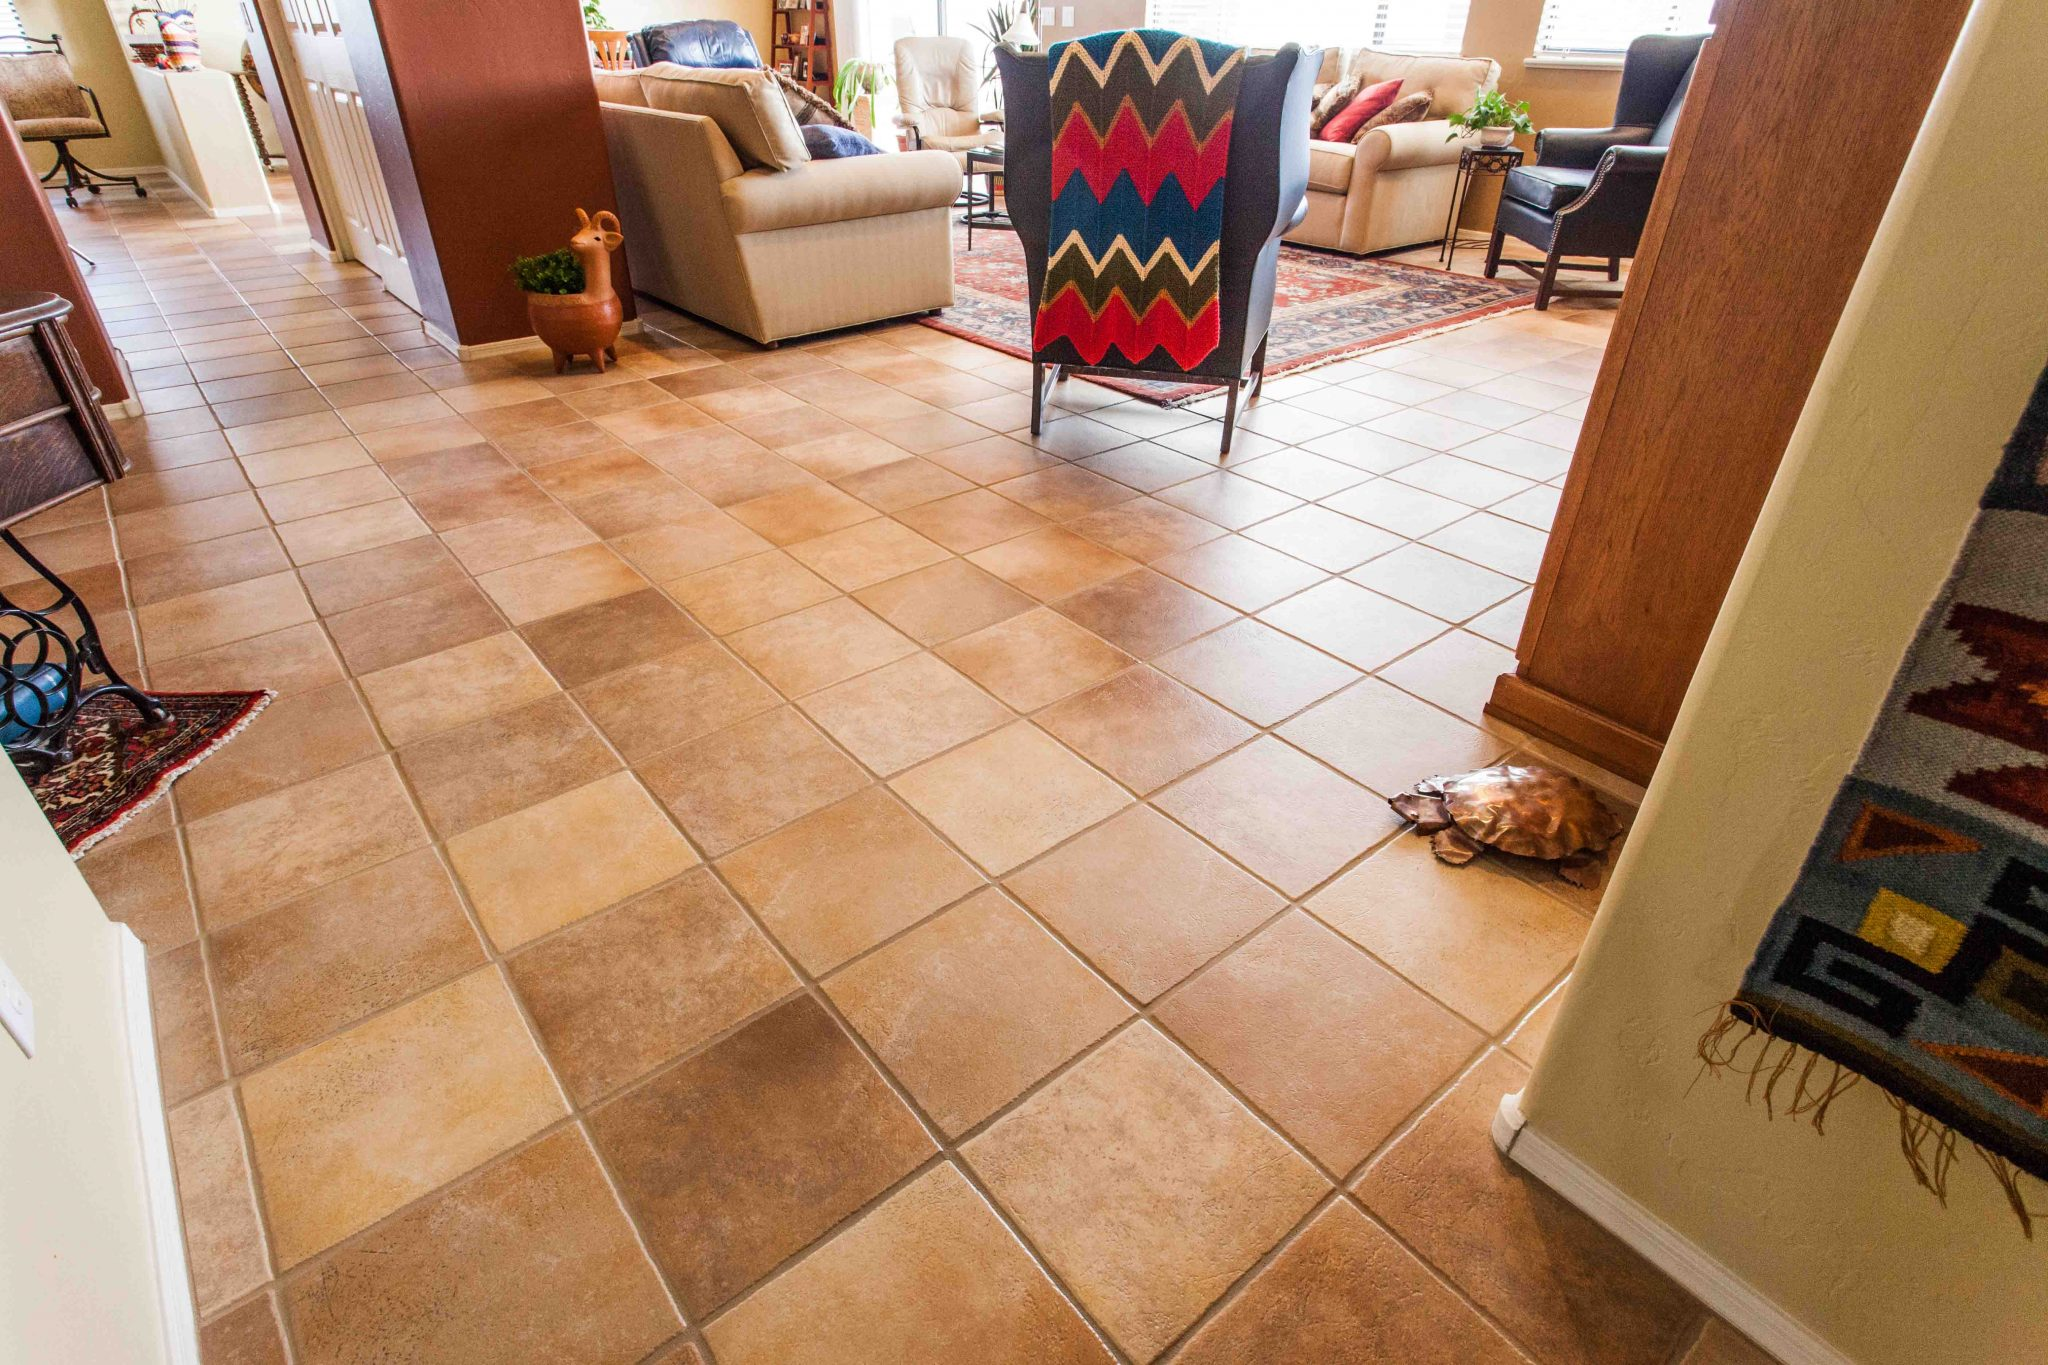 Ceramic Tile And Grout Cleaning Living Room Corner 2 Az Tile